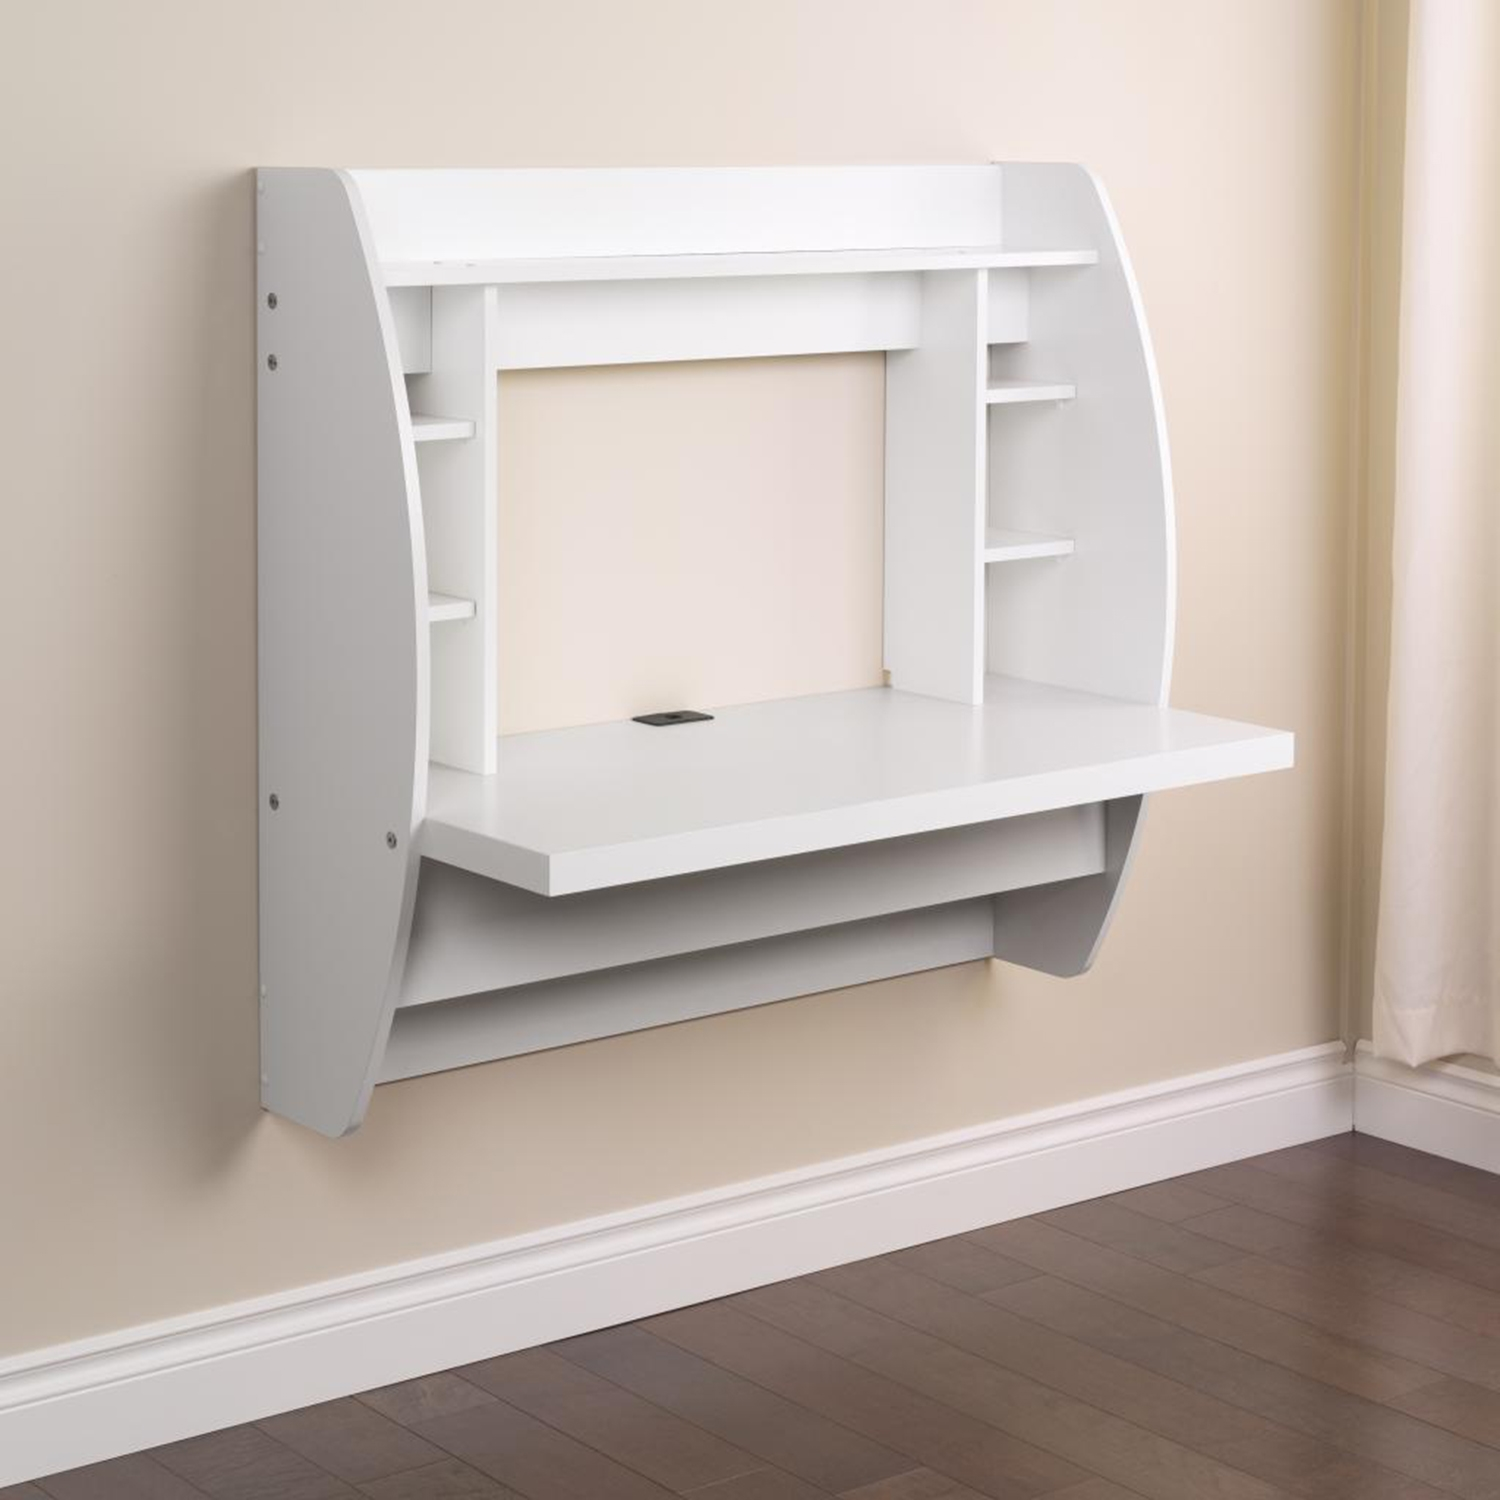 Floating Desk with Storage - White - PRE-WEHW-0200-1